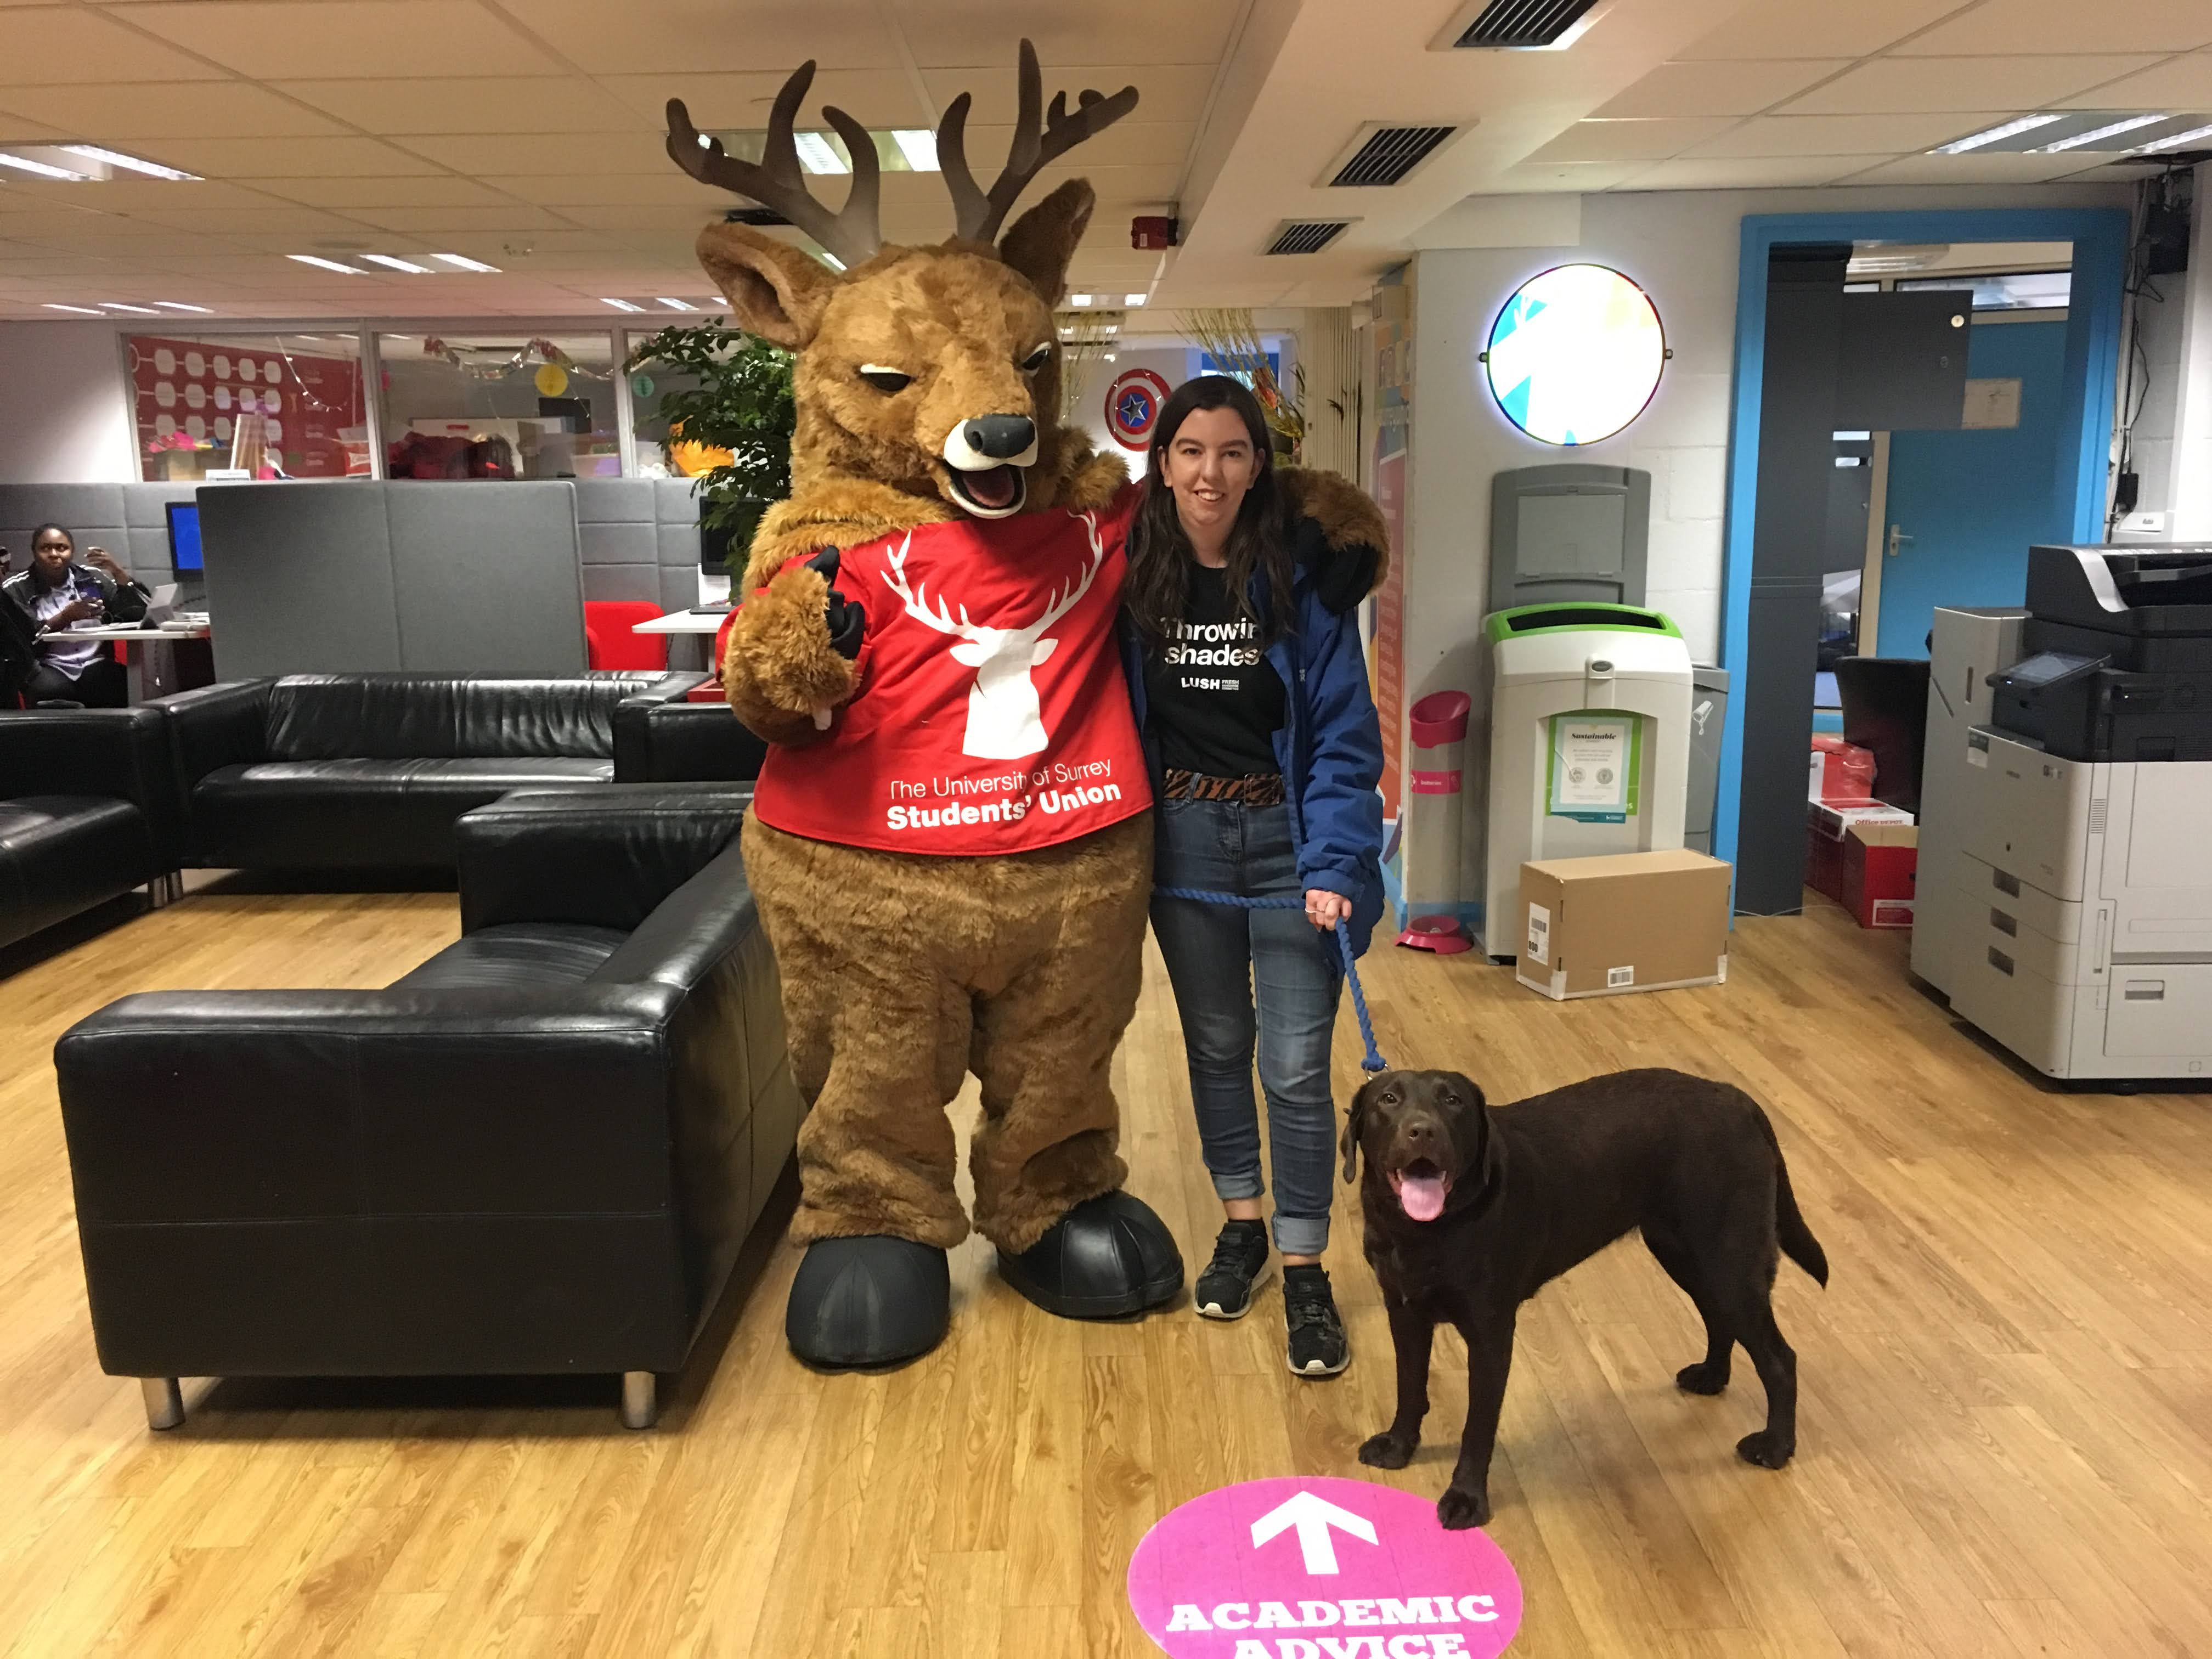 Steve the Stag University of Surrey Student Union mascot with dog